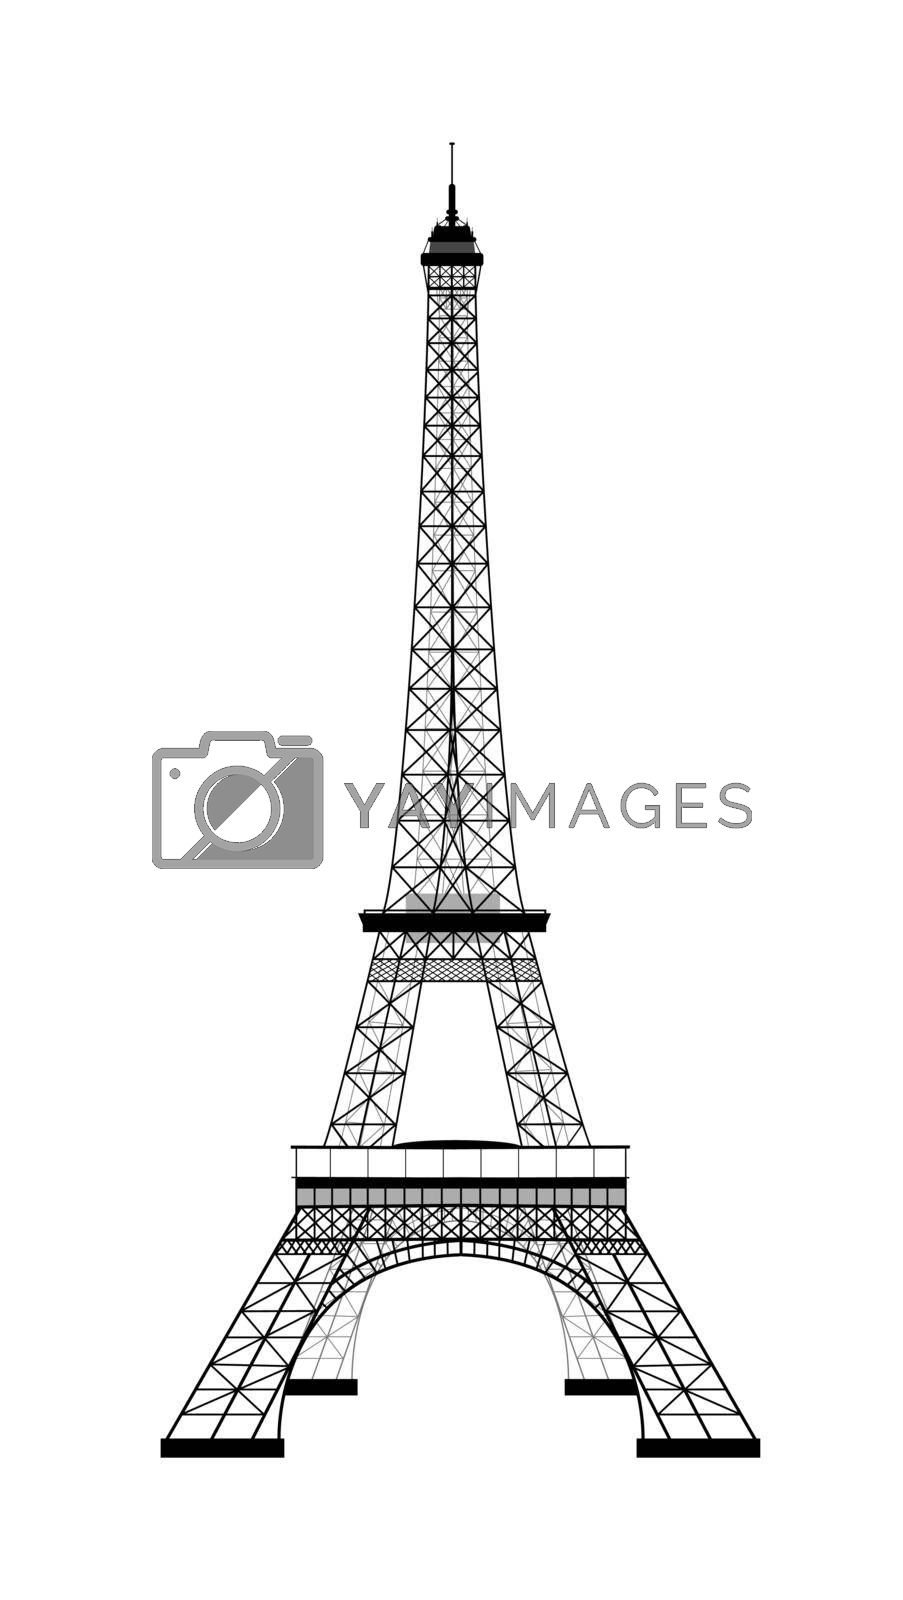 Royalty free image of Eiffel Tower silhouette on white background by liolle